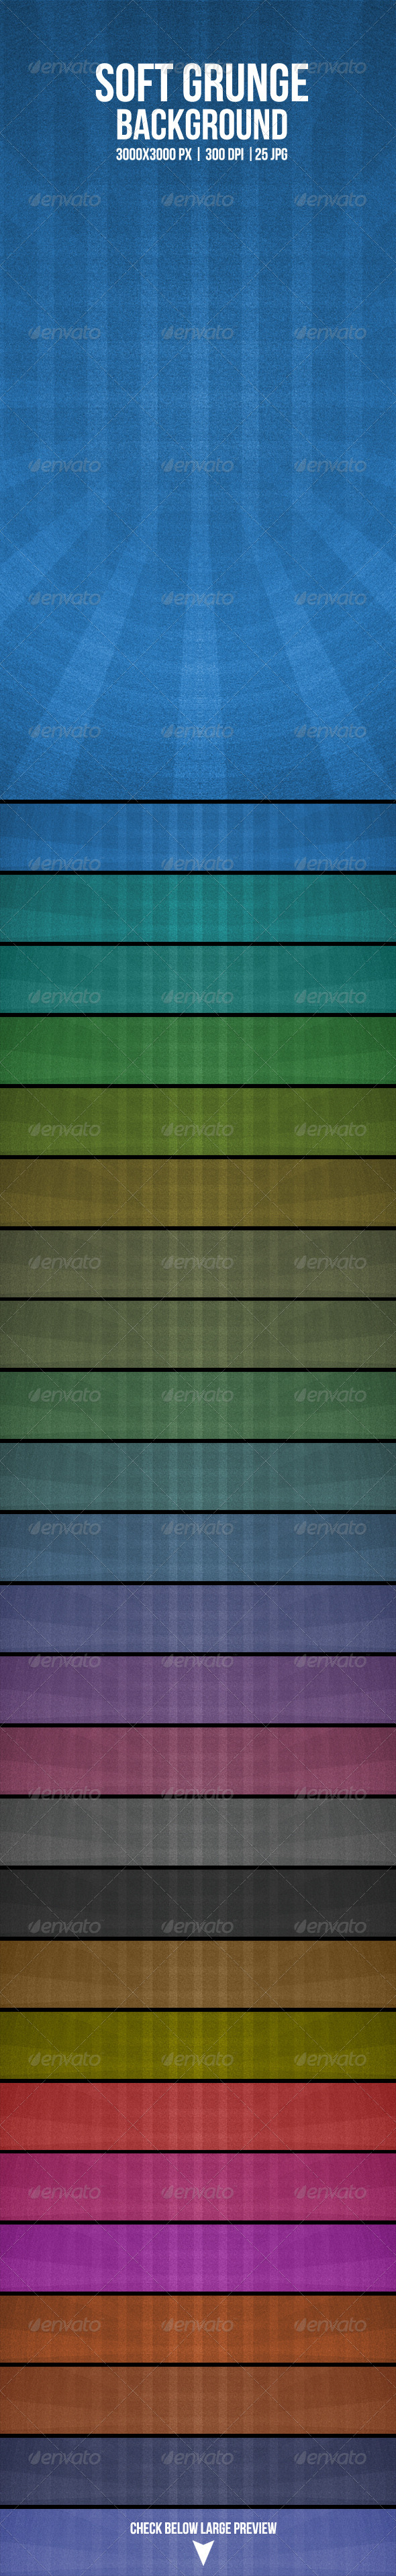 25 Soft Grunge Background - Abstract Backgrounds